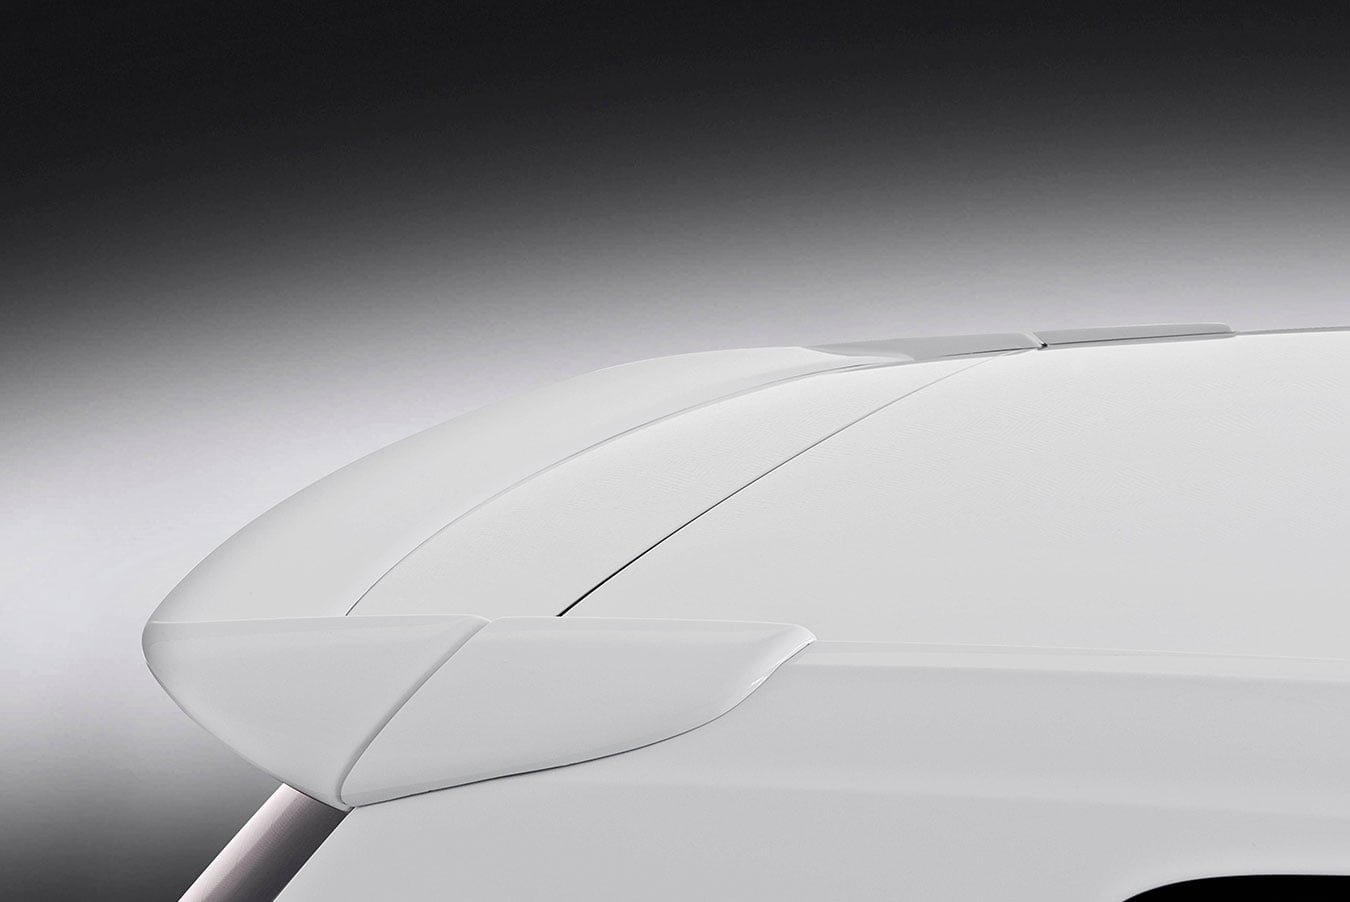 Golf 7 GTI Sport Roof Spoiler for GTI / GTD / R